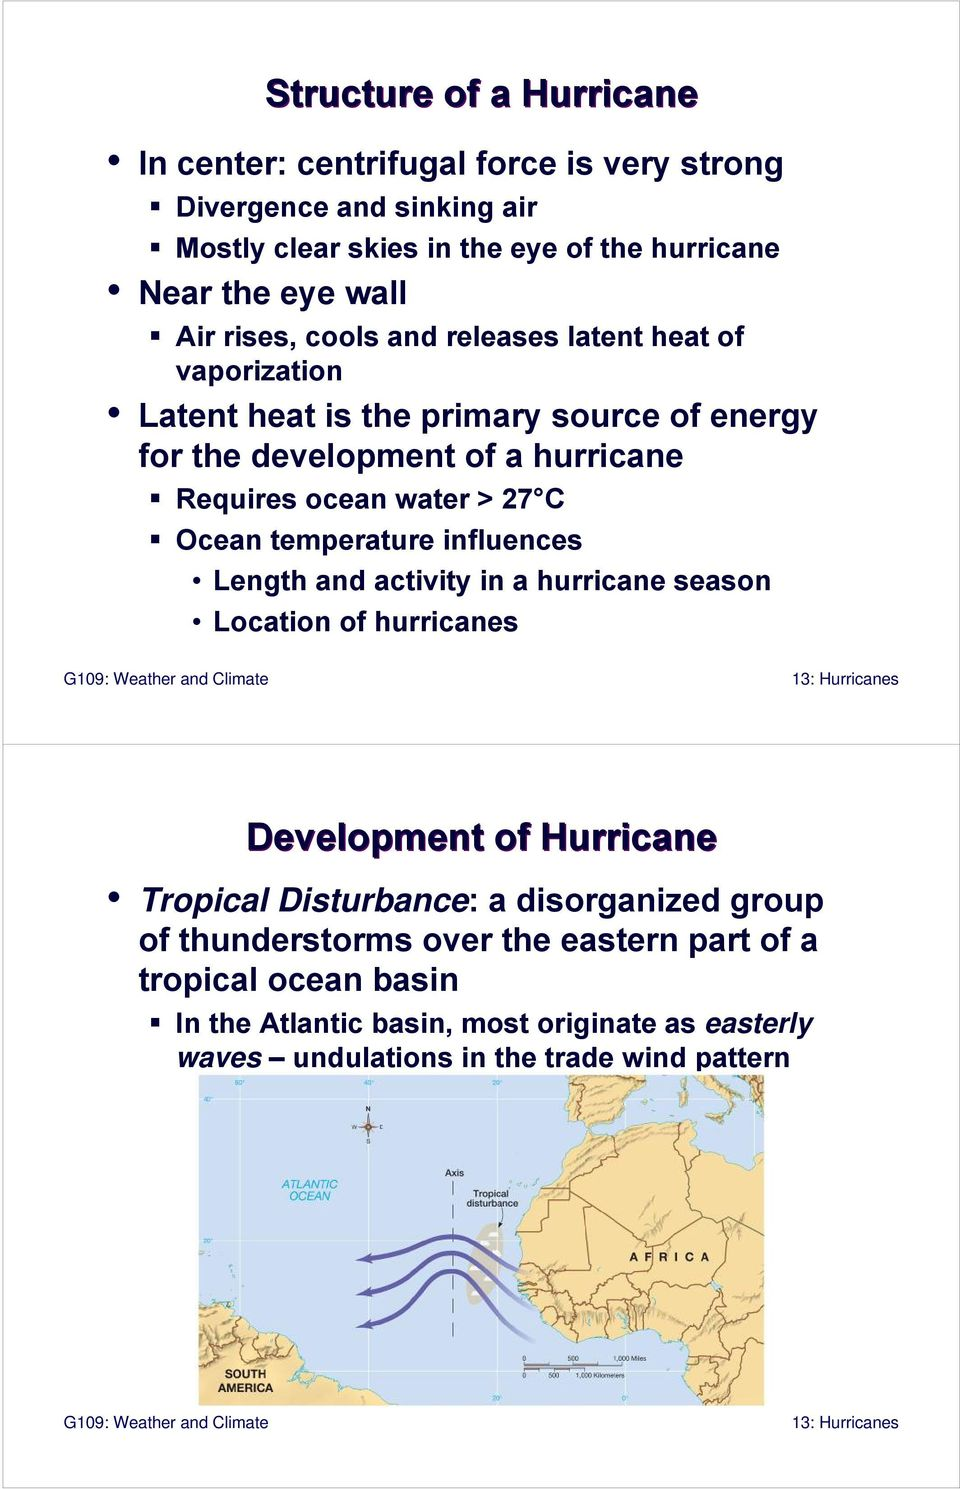 27 C Ocean temperature influences Length and activity in a hurricane season Location of hurricanes Development of Hurricane Tropical Disturbance: a disorganized